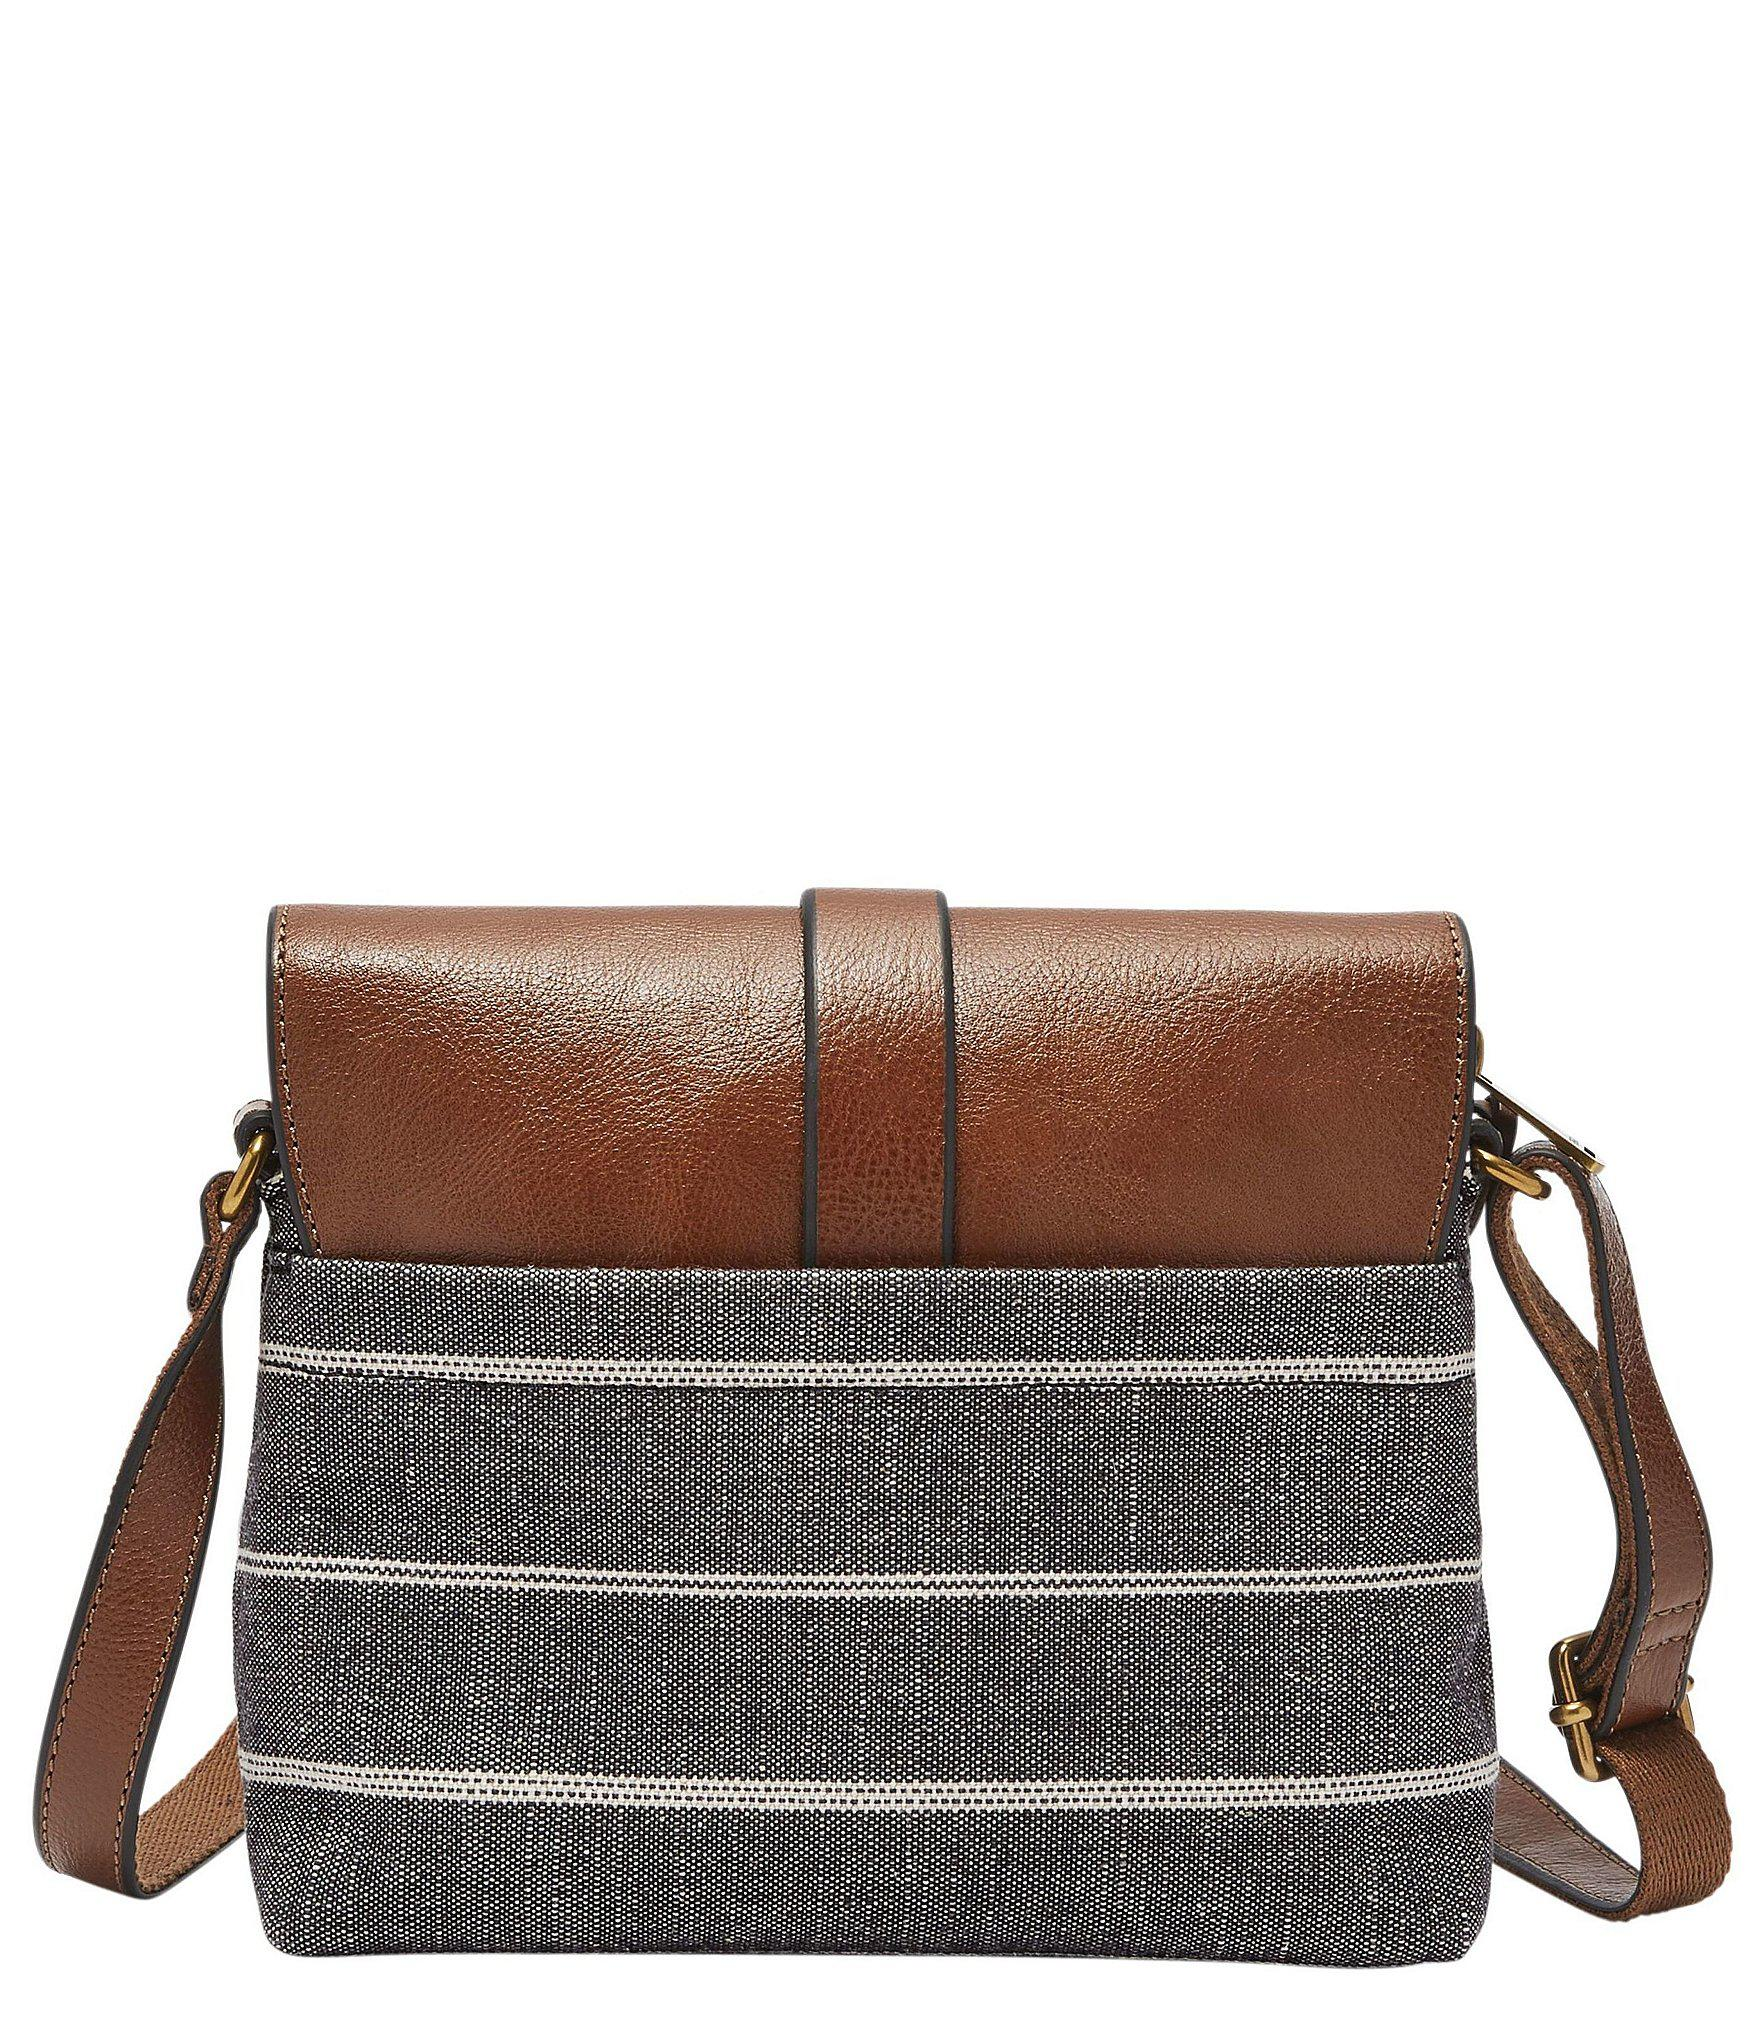 3ced9b242 Fossil - Multicolor Kinley Striped Small Cross-body Bag - Lyst. View  fullscreen